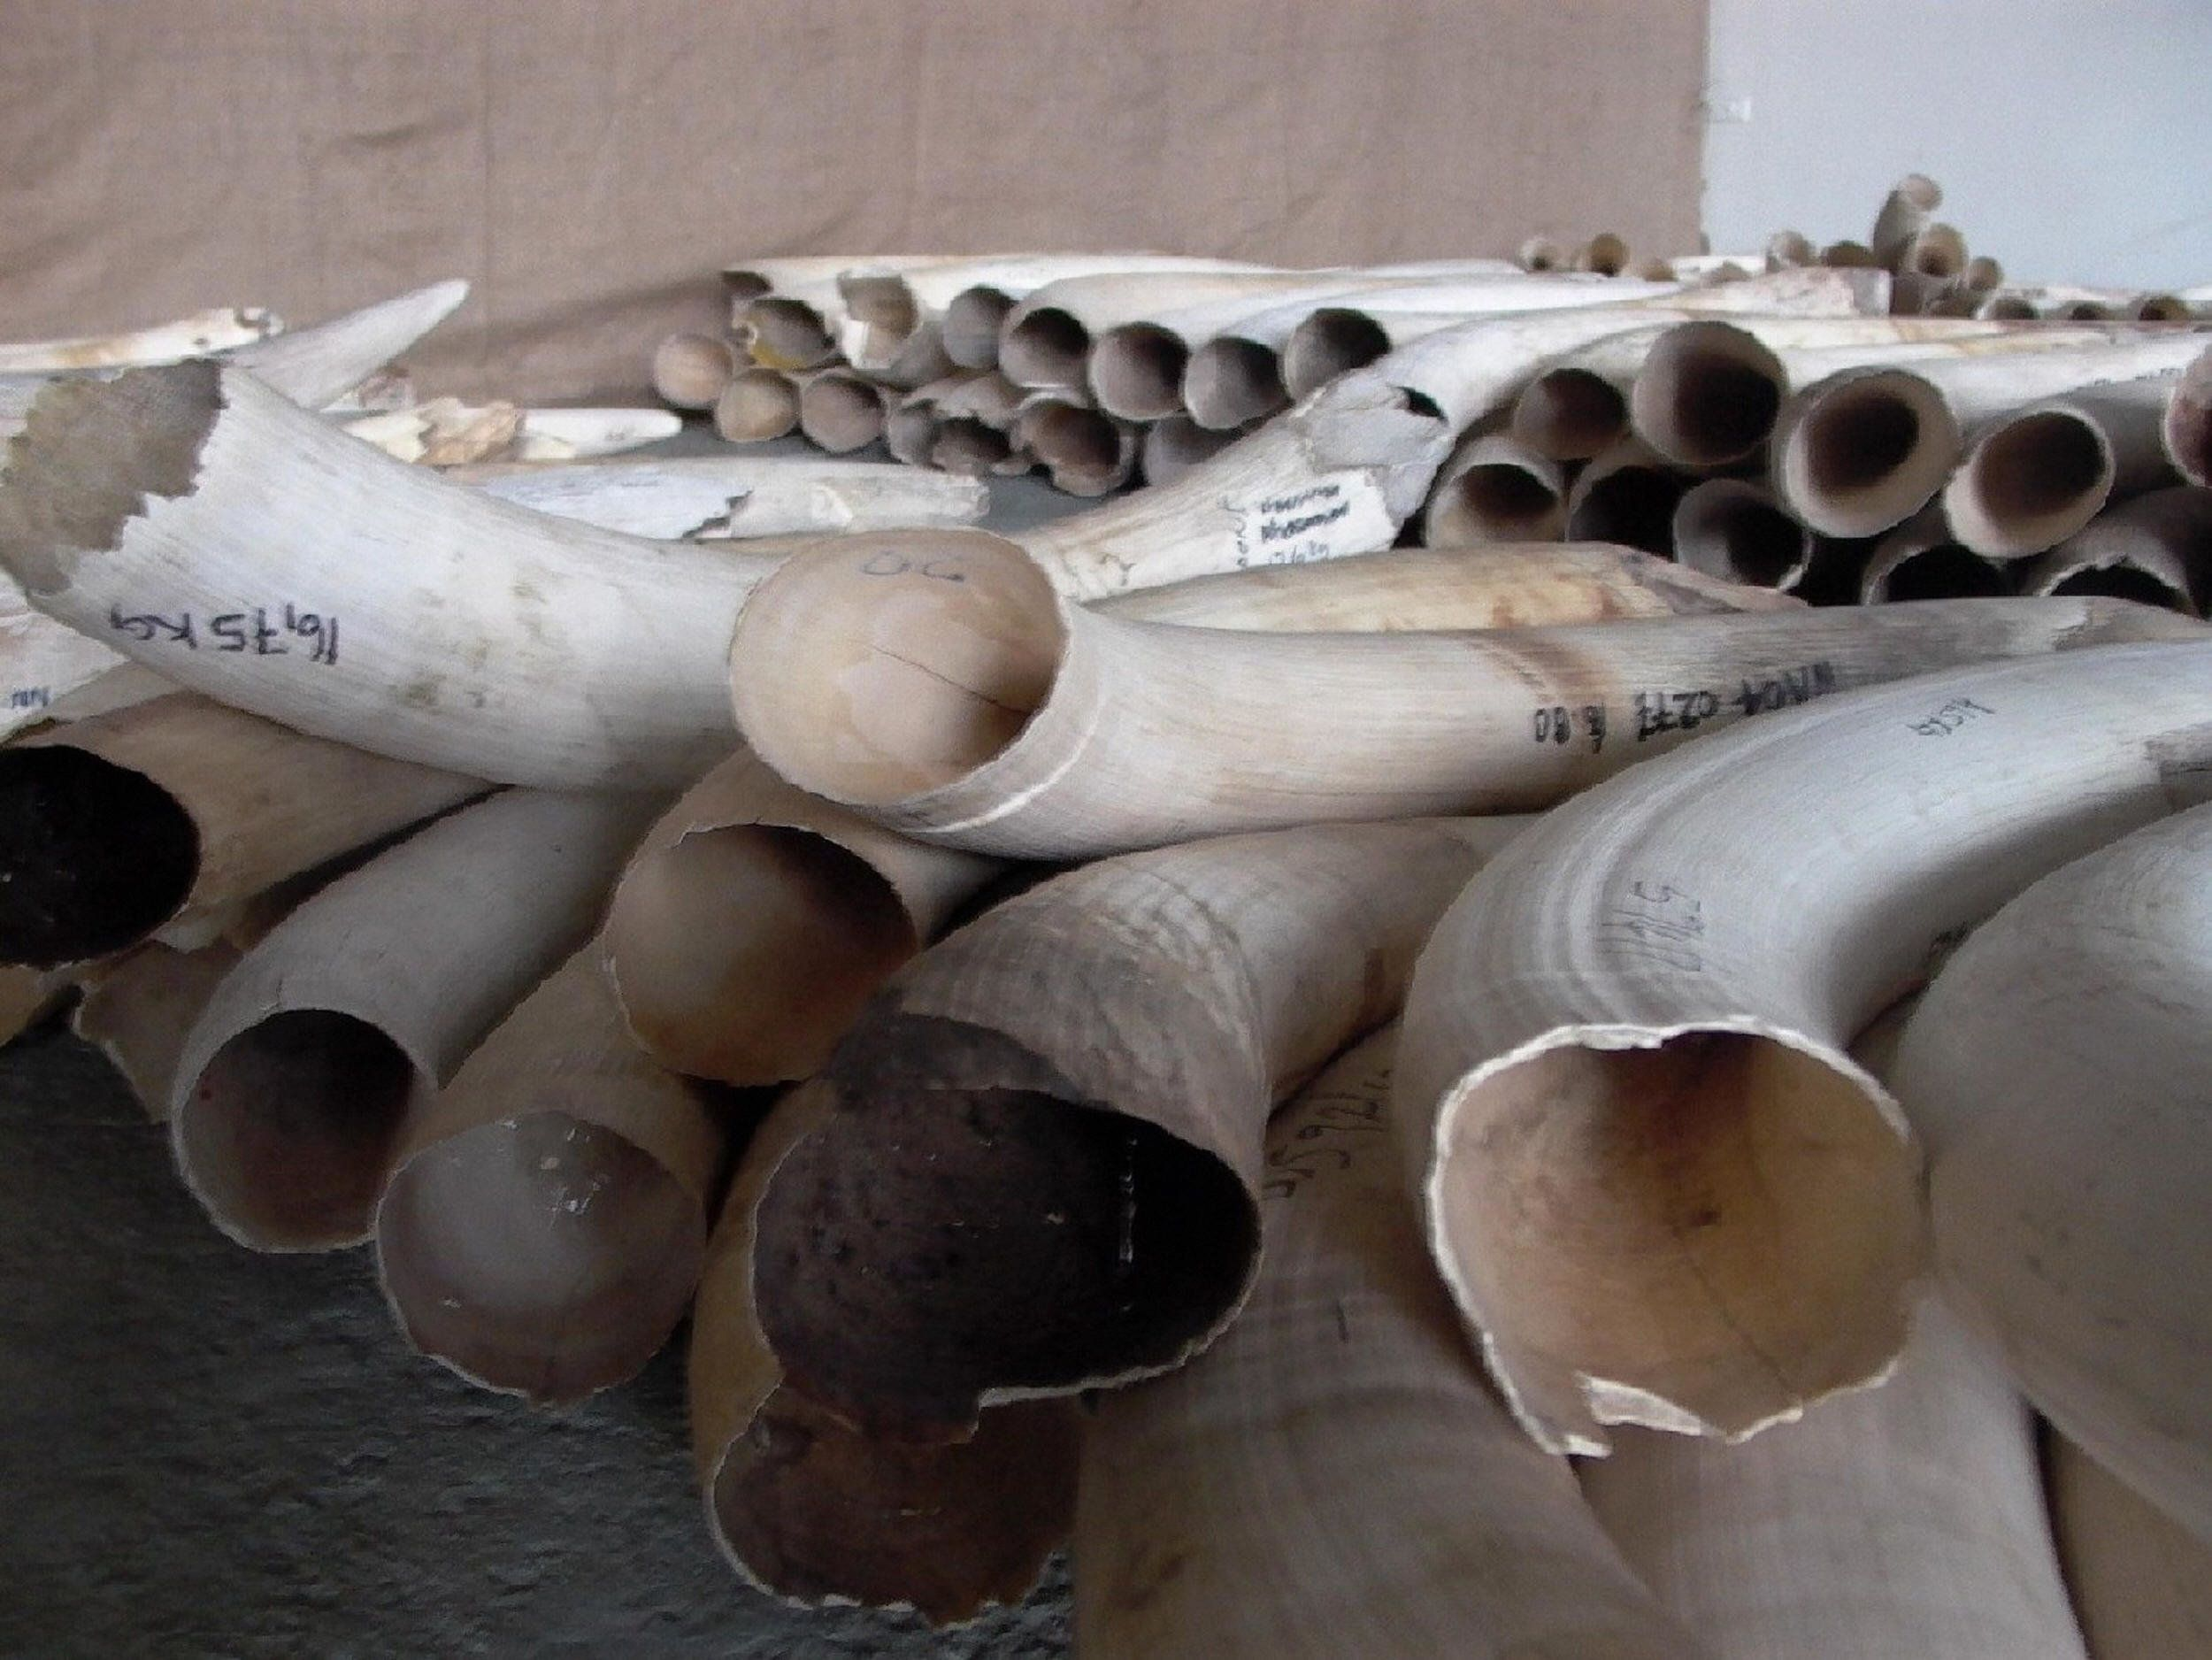 Tusks are displayed on October 28, 2008 in Windhoek during the first legal auction of elephant tusks in nearly a decade -- exclusively for Chinese and Japanese buyers.  The sale, where seven tonnes of ivory were sold for 1.1 million dollars, kicked off two weeks of auctions across southern Africa that will put 108 tonnes of tusks on the block, in a one-off sale to the Asian powers. Four African countries have been authorised by CITES, the international convention that regulates trade in endangered species, to hold the sales only to China and Japan. AFP PHOTO / Brigitte Weidlich (Photo credit should read BRIGITTE WEIDLICH/AFP/Getty Images)